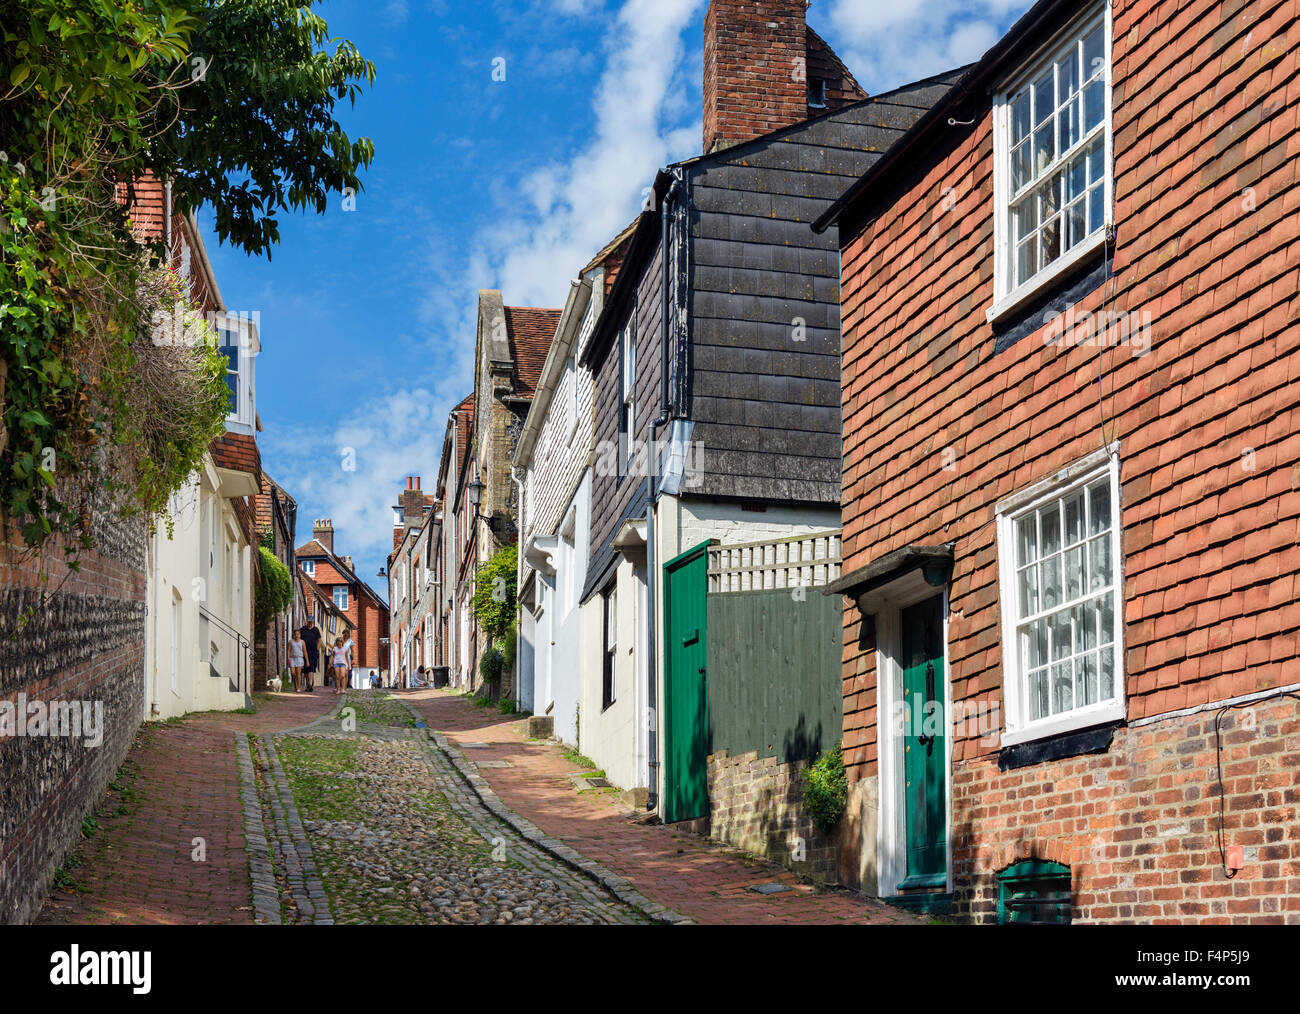 Keere Street in the old town, Lewes, East Sussex England, UK Stock Photo